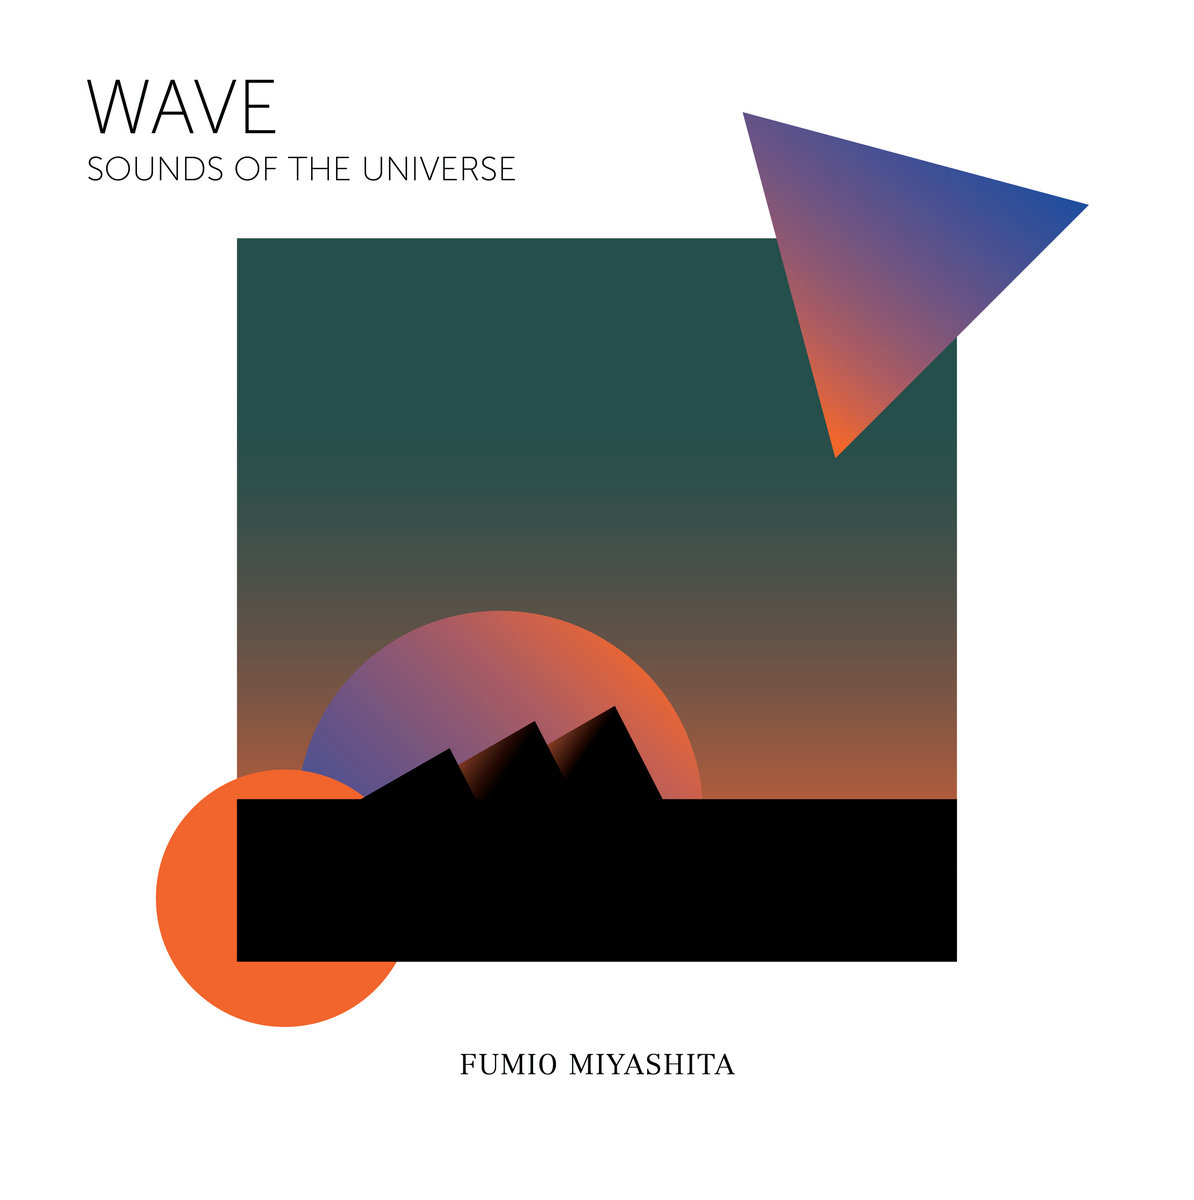 WAVE Sounds of the Universe